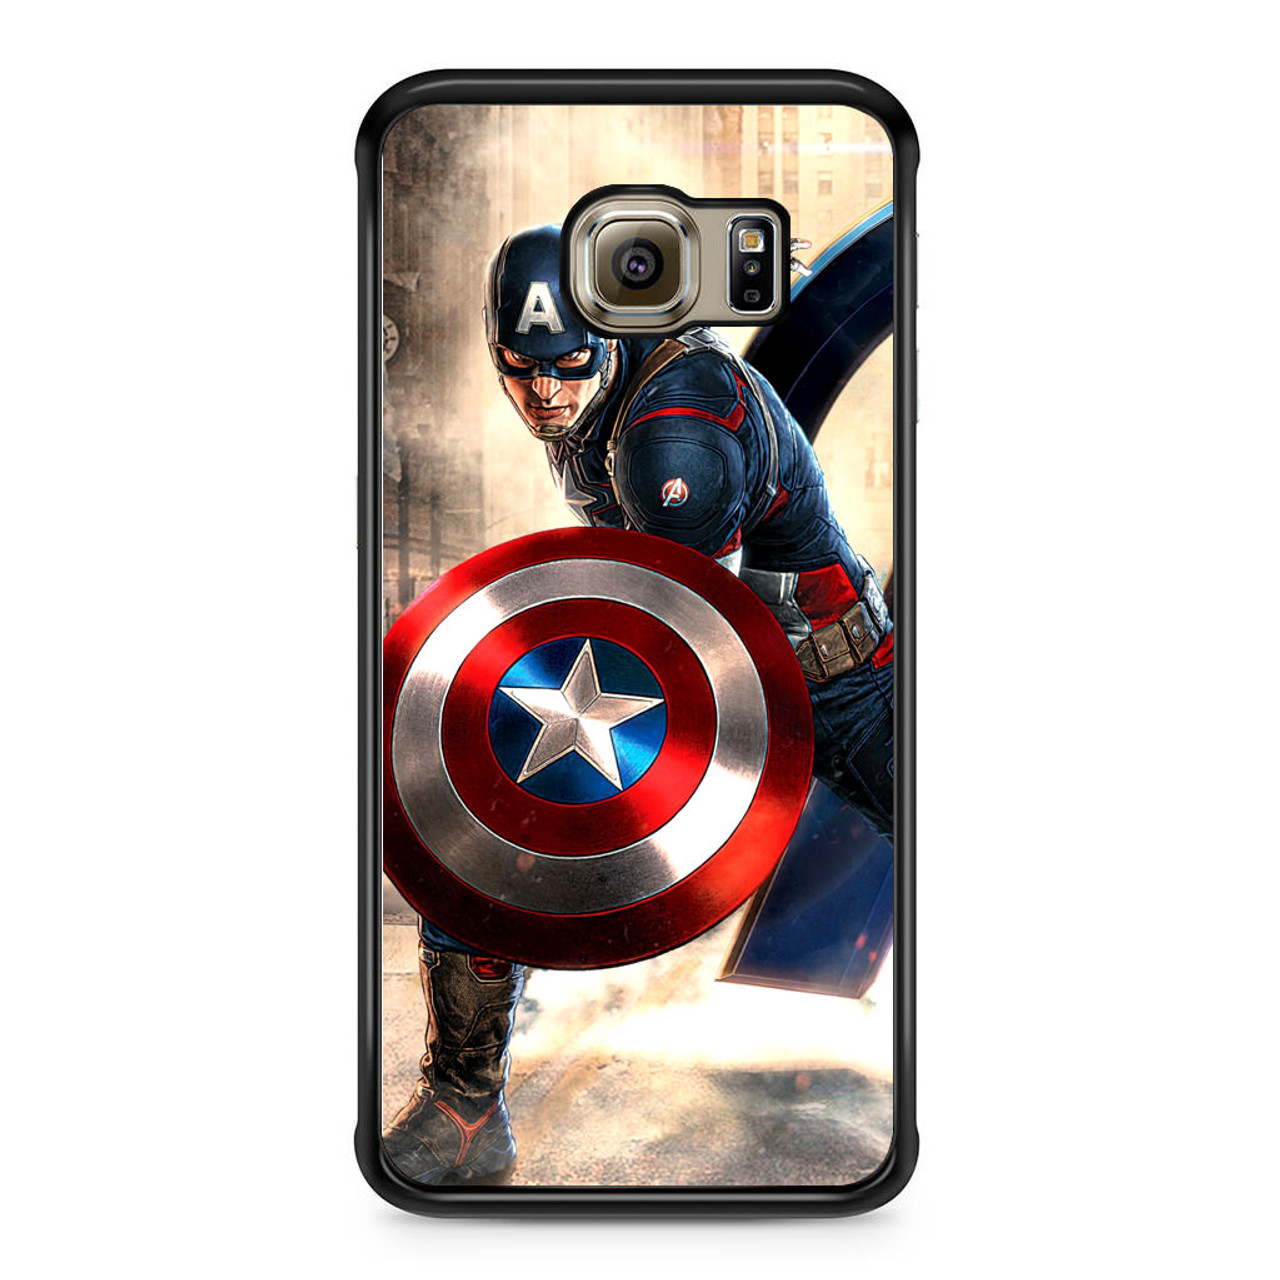 newest df46b 9fb57 Captain America Avengers Samsung Galaxy S6 Edge Case